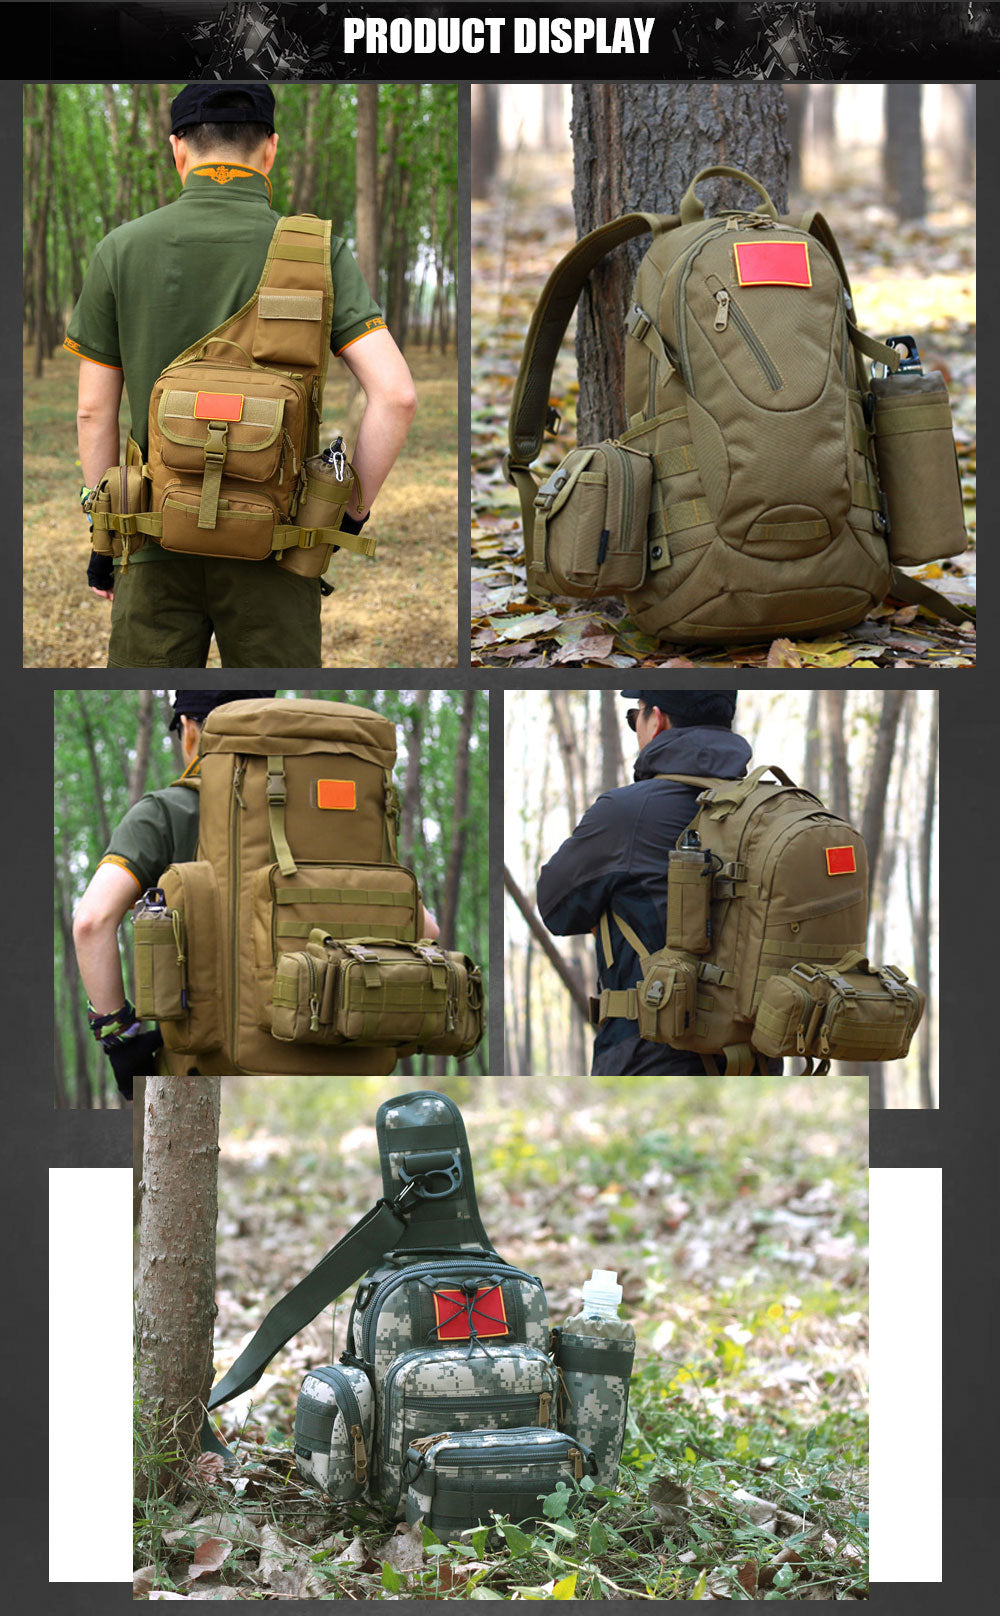 "<img src=""//cdn.shopify.com/s/files/1/2574/2802/files/Tactical_MOLLE_System_Water_Bottle_Army_Bag_Climbing_Bags_D-ring_Holder_Drawstring_Pouch_Durable_Travel_Hiking_Water_Bottle_Bag_-_7_Colors_5.jpg?v=1530409799"" alt=""Tactical MOLLE System Water Bottle Army Bag Climbing Bags D-ring Holder Drawstring Pouch Durable Travel Hiking Water Bottle Bag - 7 Colors"" />"